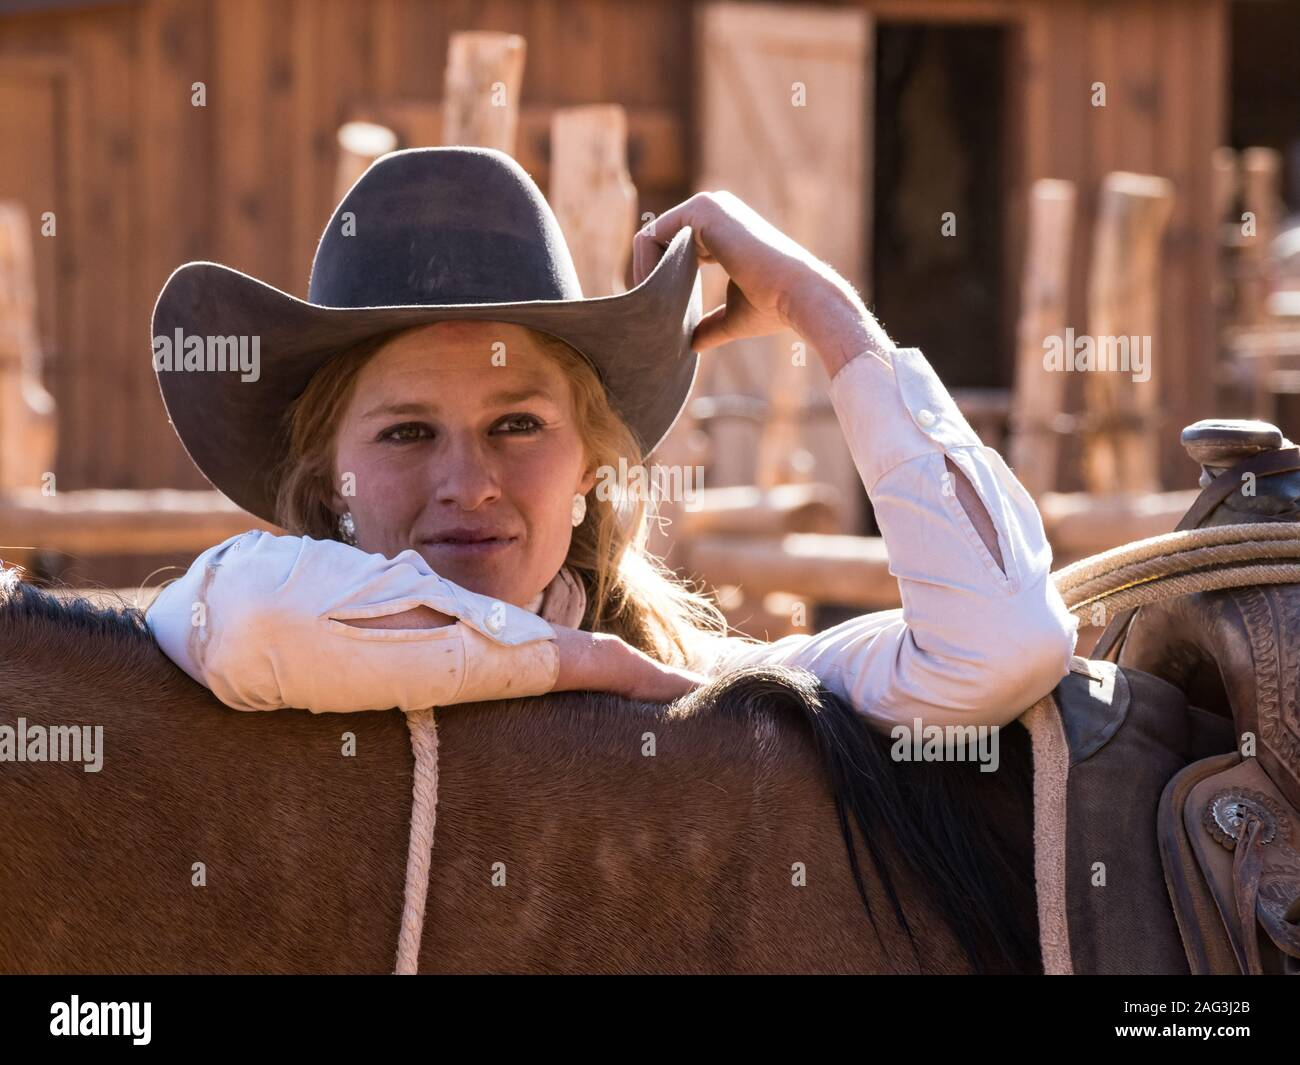 A young attractive working cowgirl wrangler poses with her horse on a ranch near Moab, Utah. Stock Photo